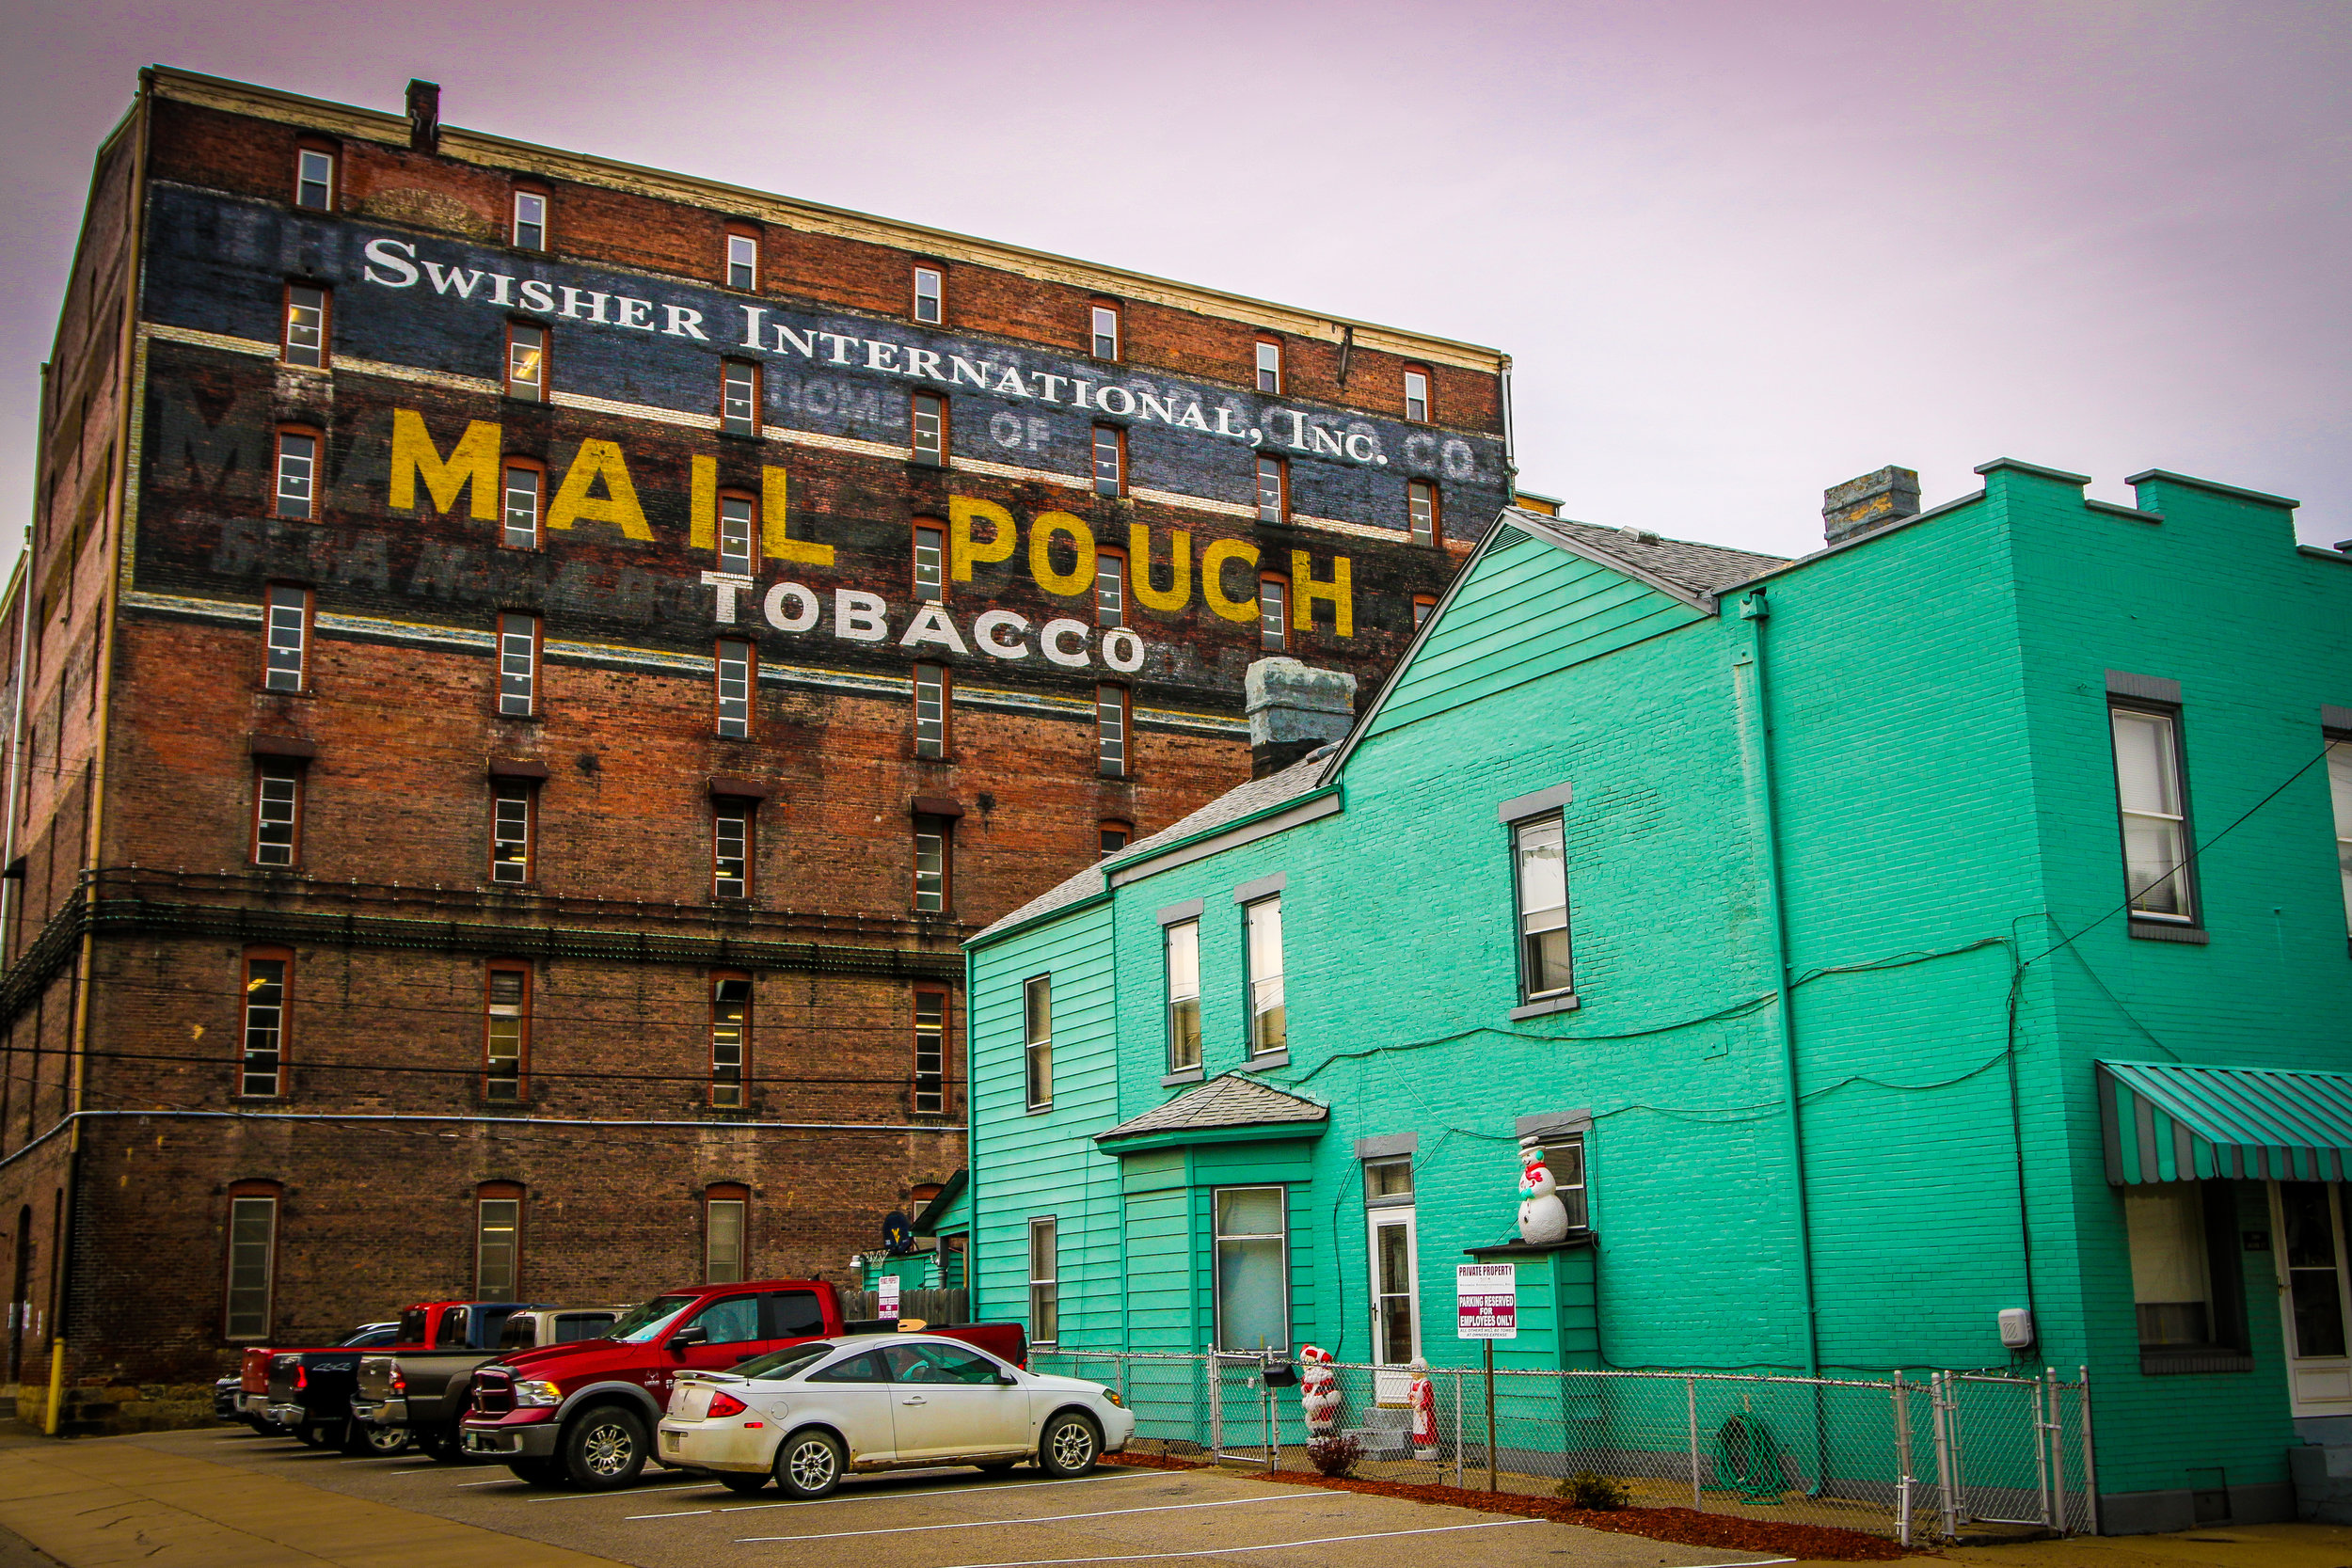 Mail Pouch Tobacco, Wheeling